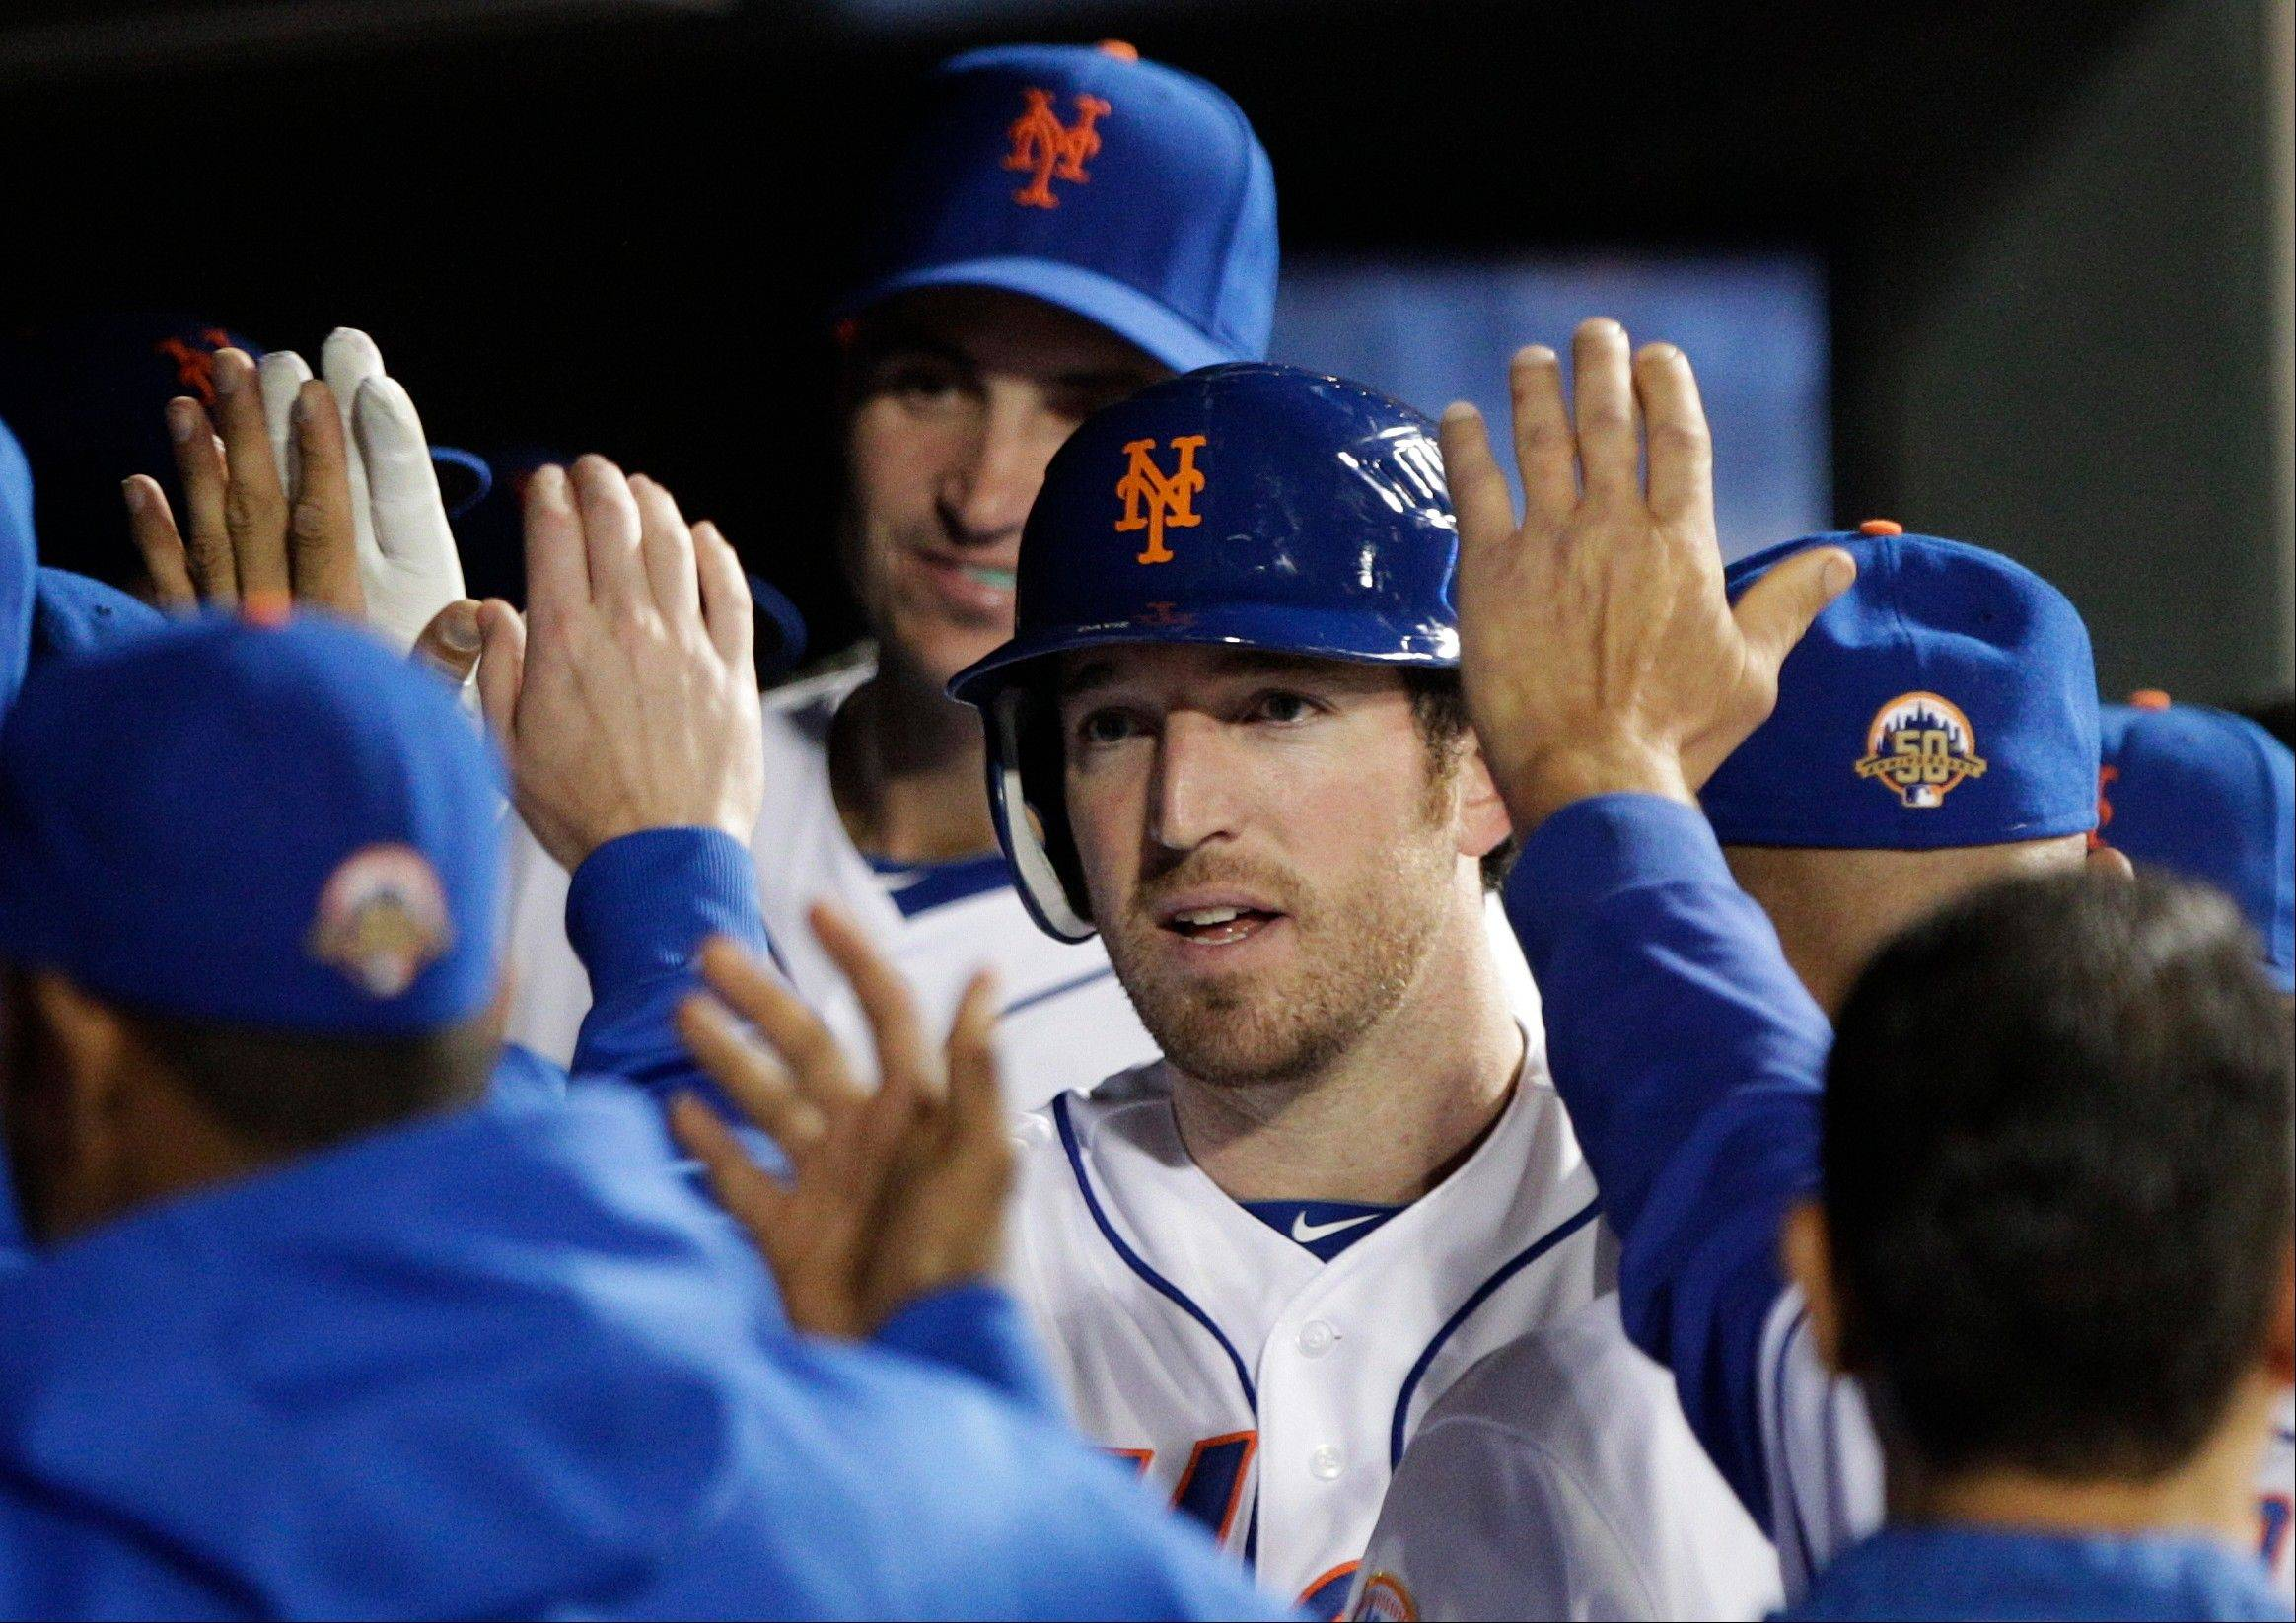 Mets get 1st home win in month